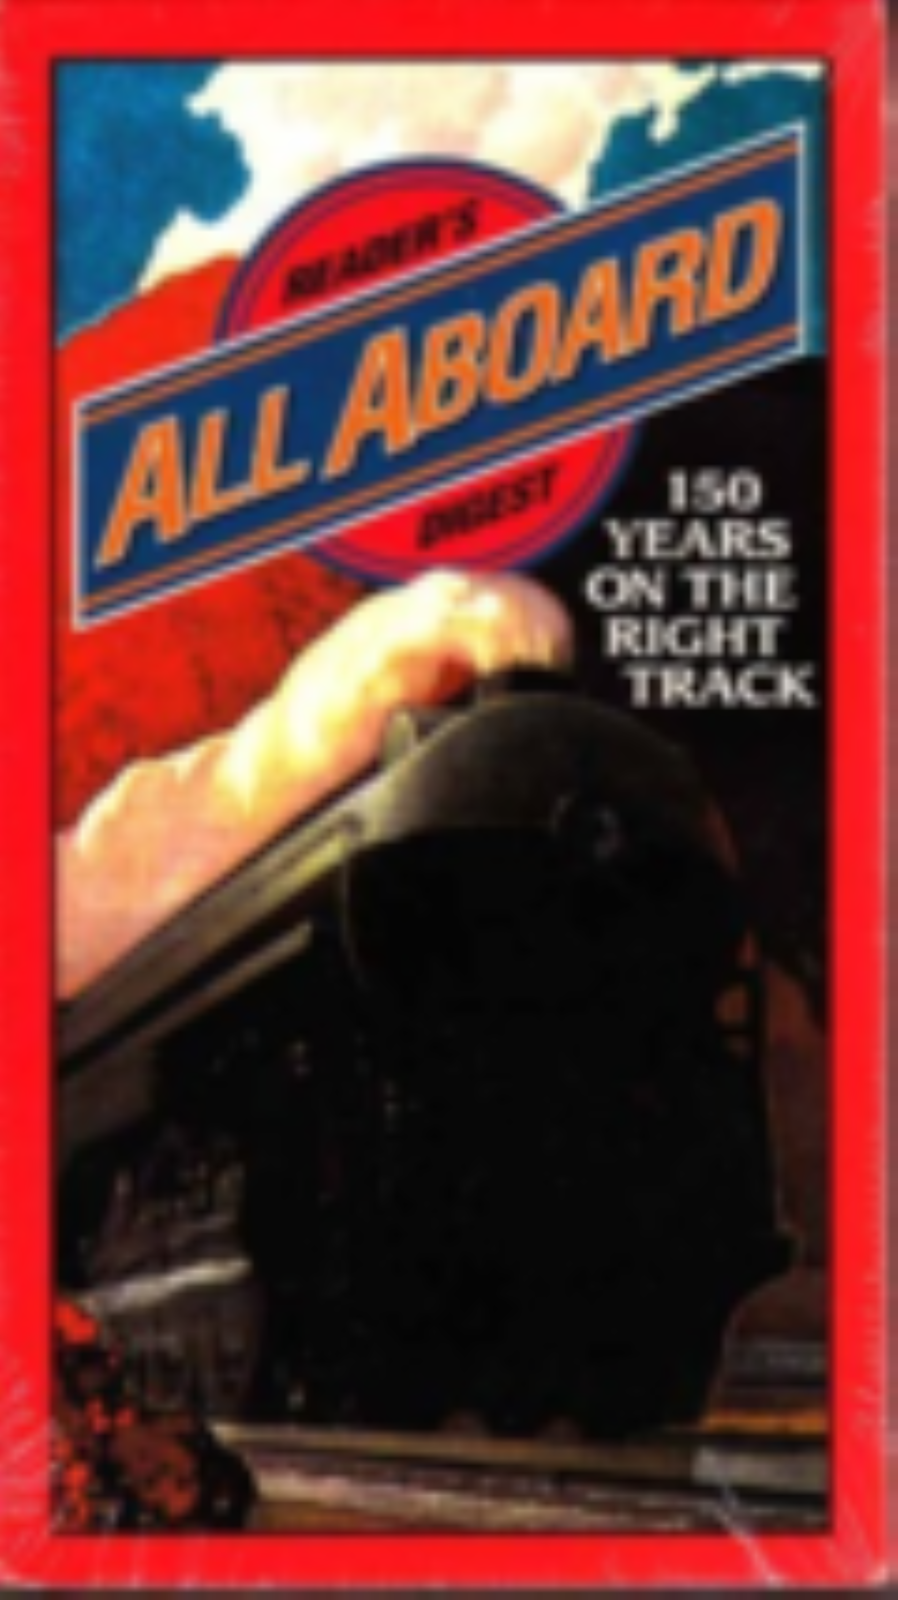 All Aboard: 150 Years on the Right Track Vhs